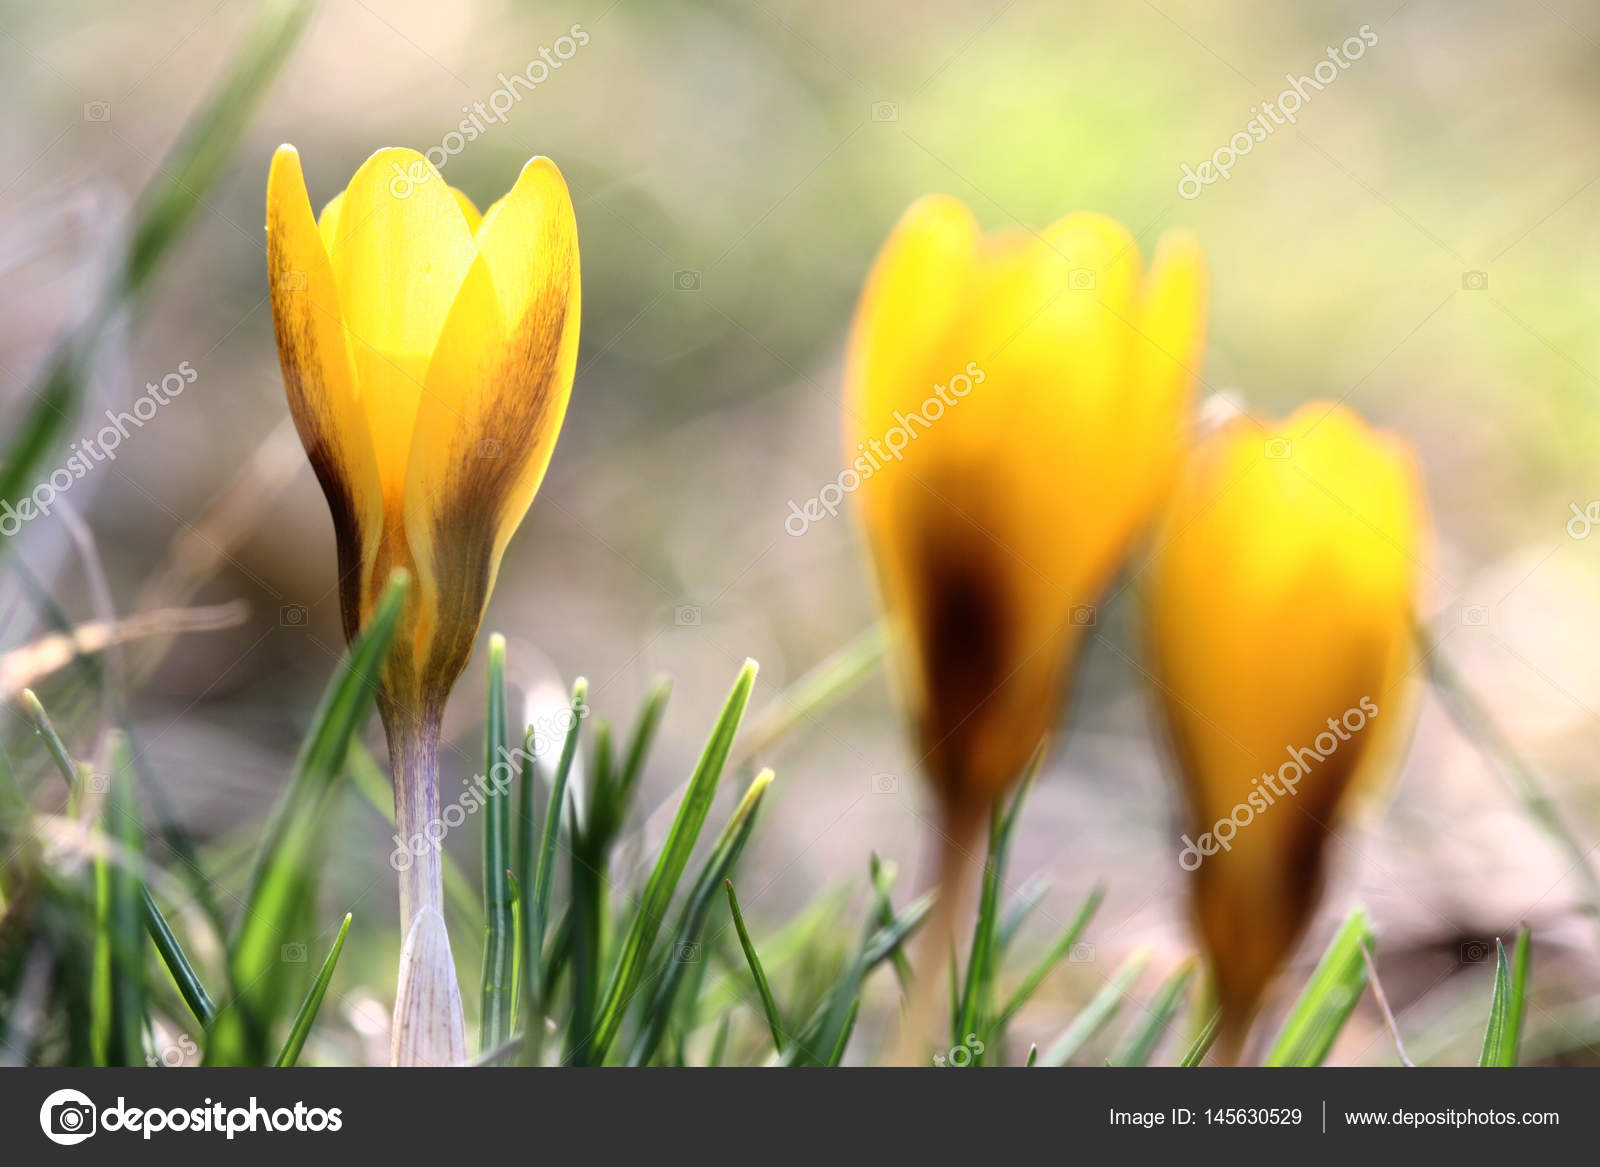 Yellow crocus flowers in field stock photo jeancliclac 145630529 close up view of yellow crocus flowers in field photo by jeancliclac mightylinksfo